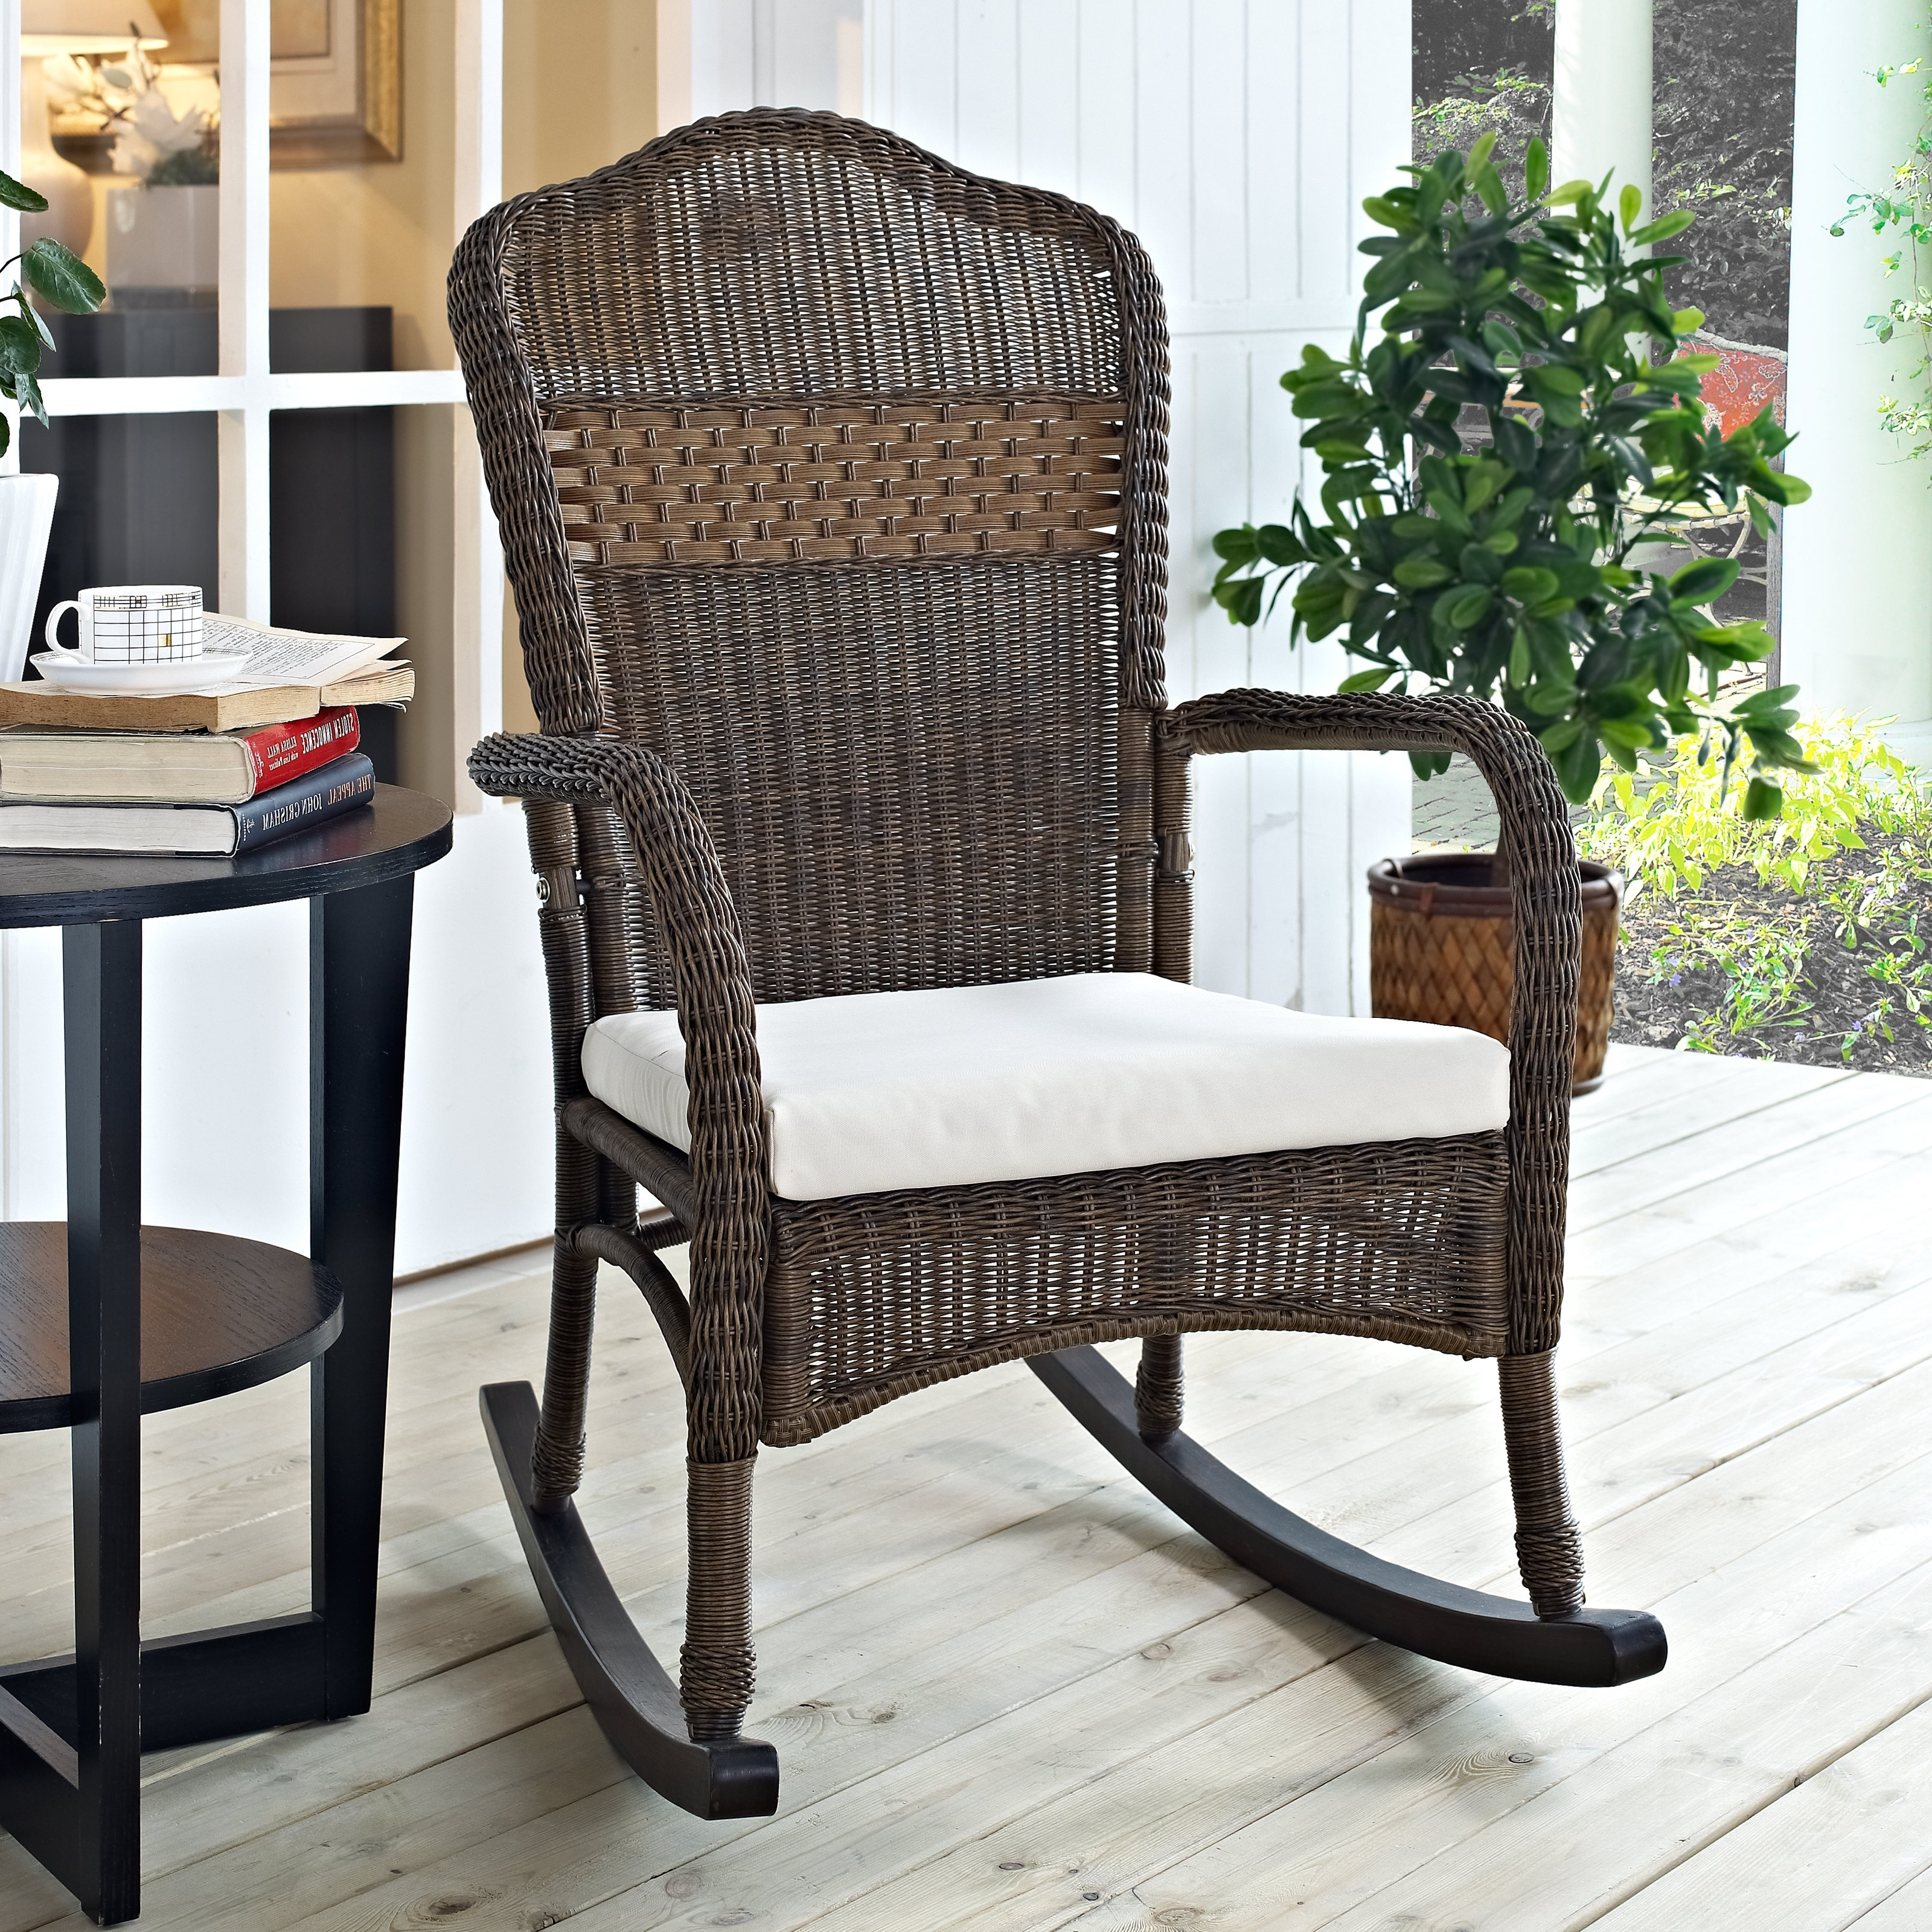 Magnificent Wicker Outdoor Rocking Chair 3 Master Cwr368 Intended For Well Liked Outside Rocking Chair Sets (View 1 of 15)